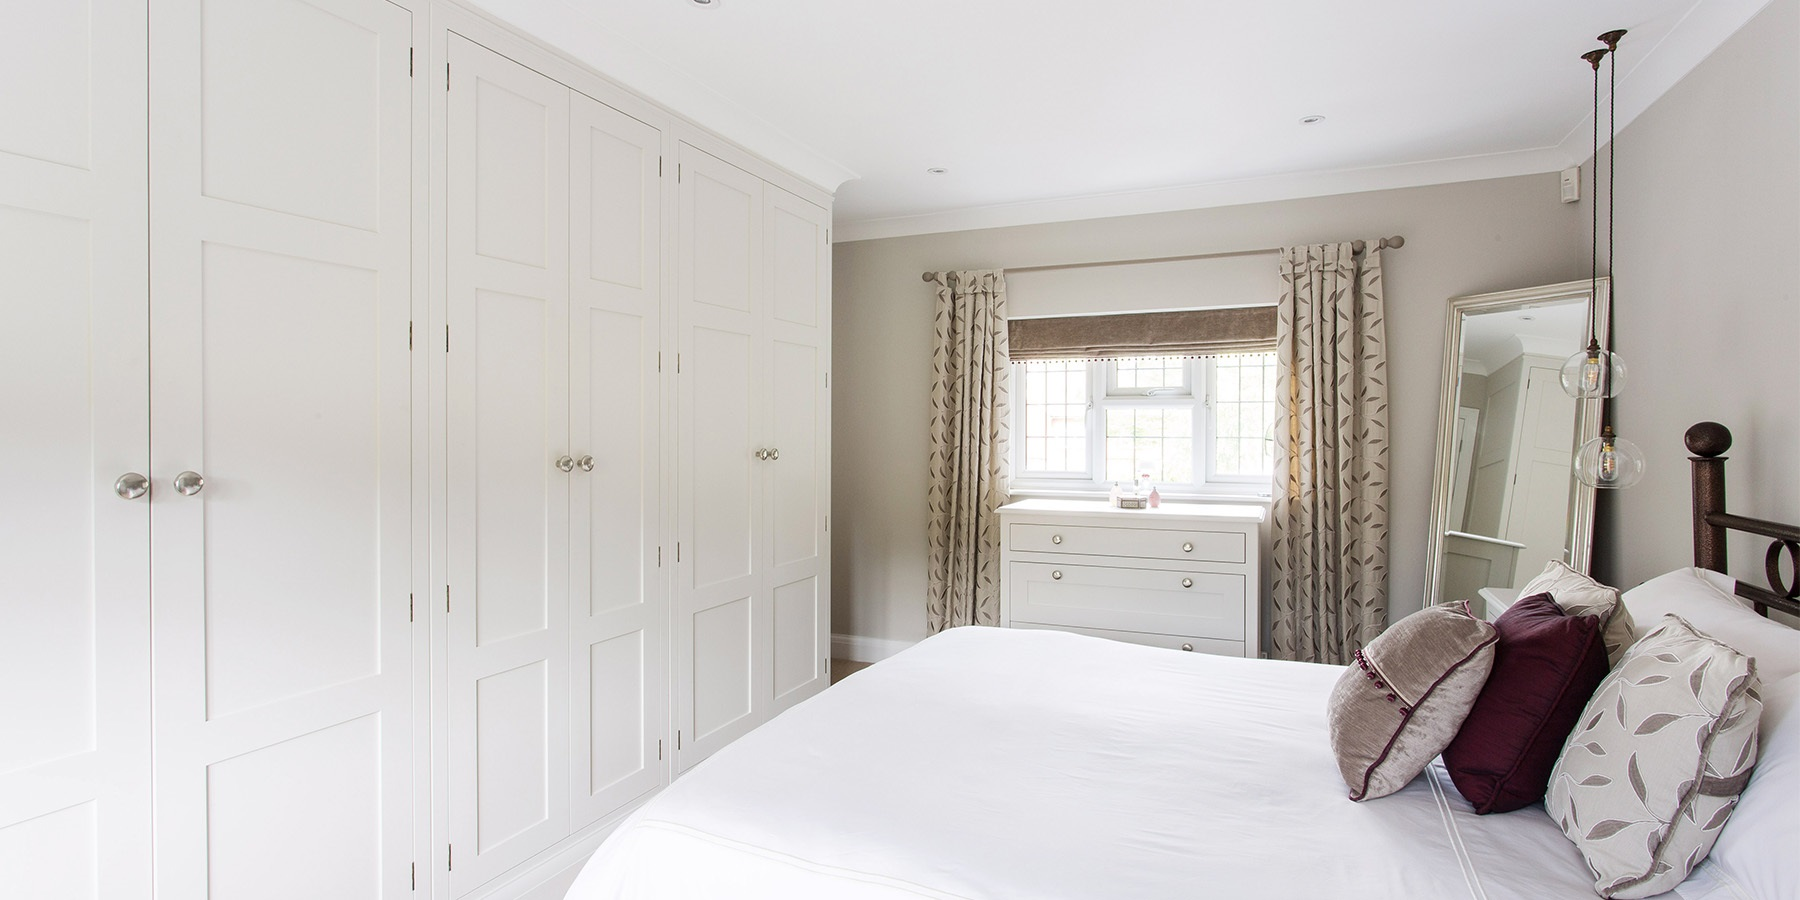 Burlanes Bespoke Bedroom Furniture - Burlanes design and make bespoke bedroom furniture and fitted wardrobes of the highest quality.